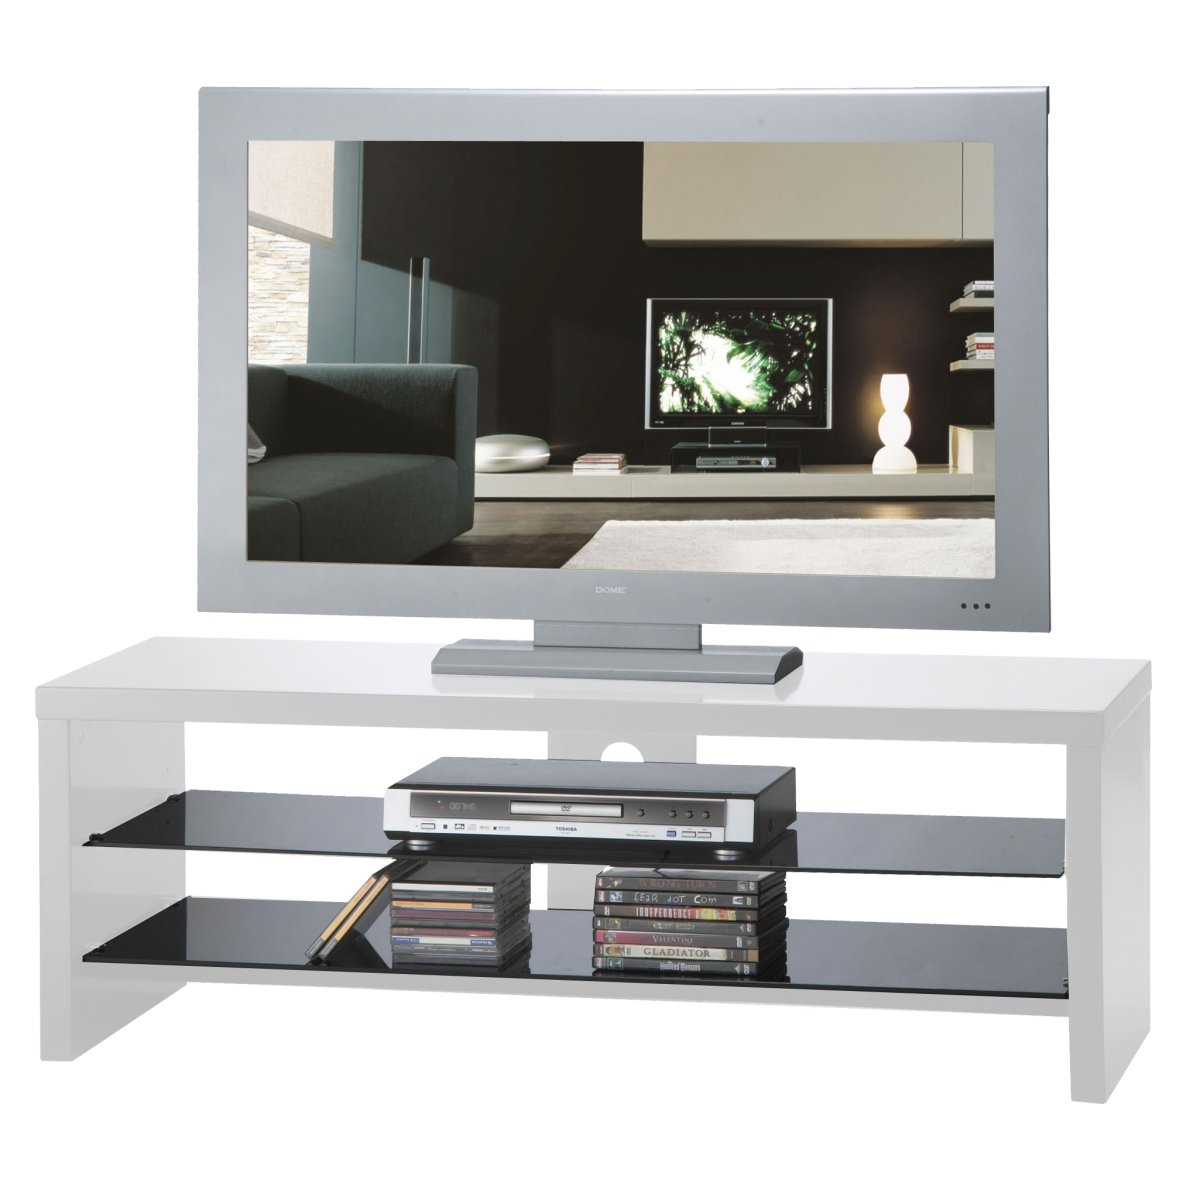 Gloss white dome tv stand flat screen 40 inch ebay for White plasma tv stands